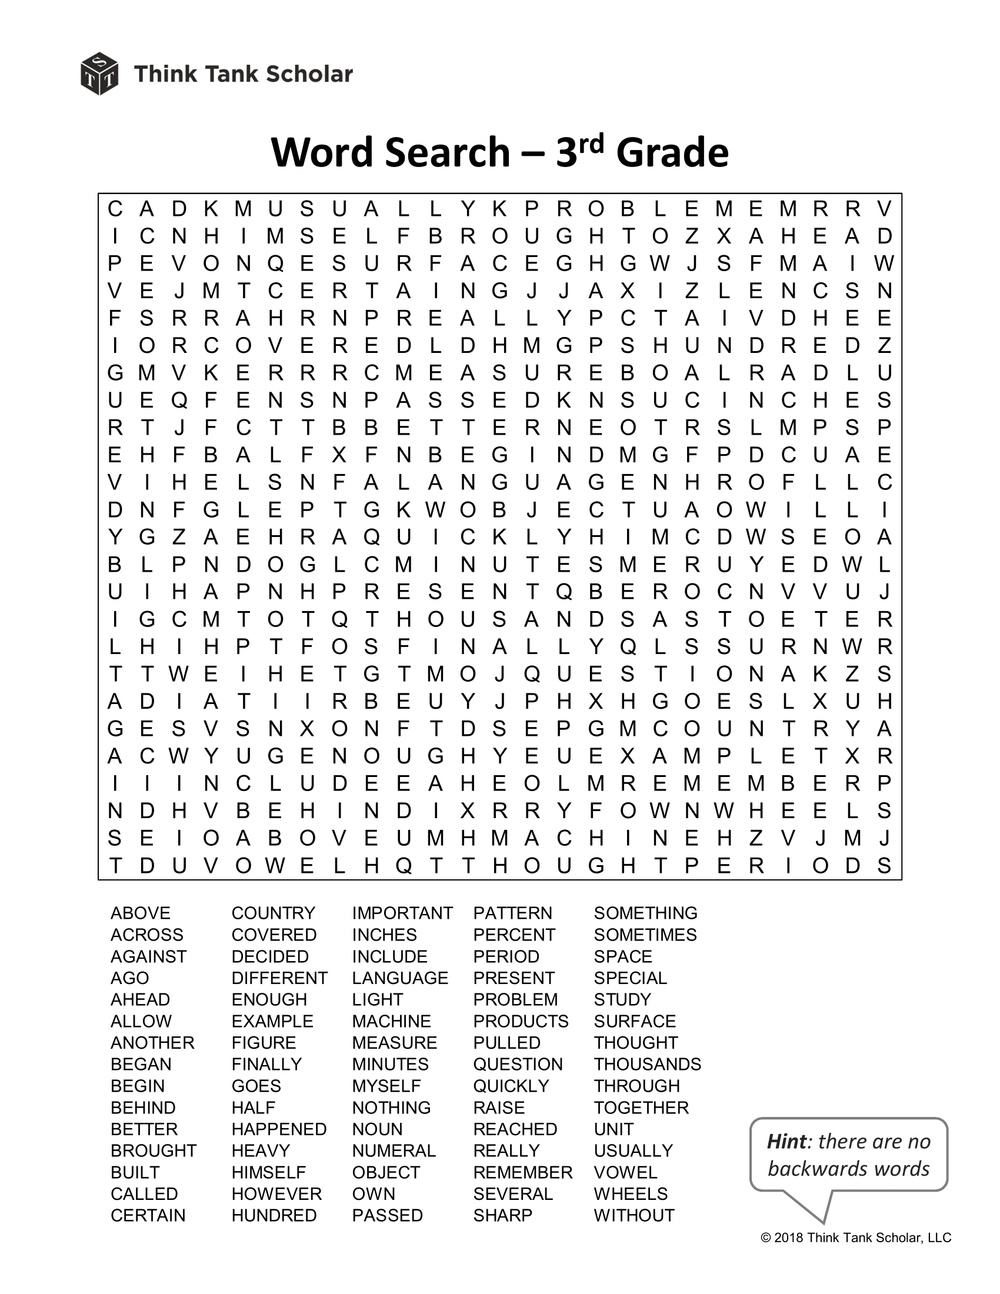 Sight Words Worksheet (FREE): Word Search 3rd Grade Printable